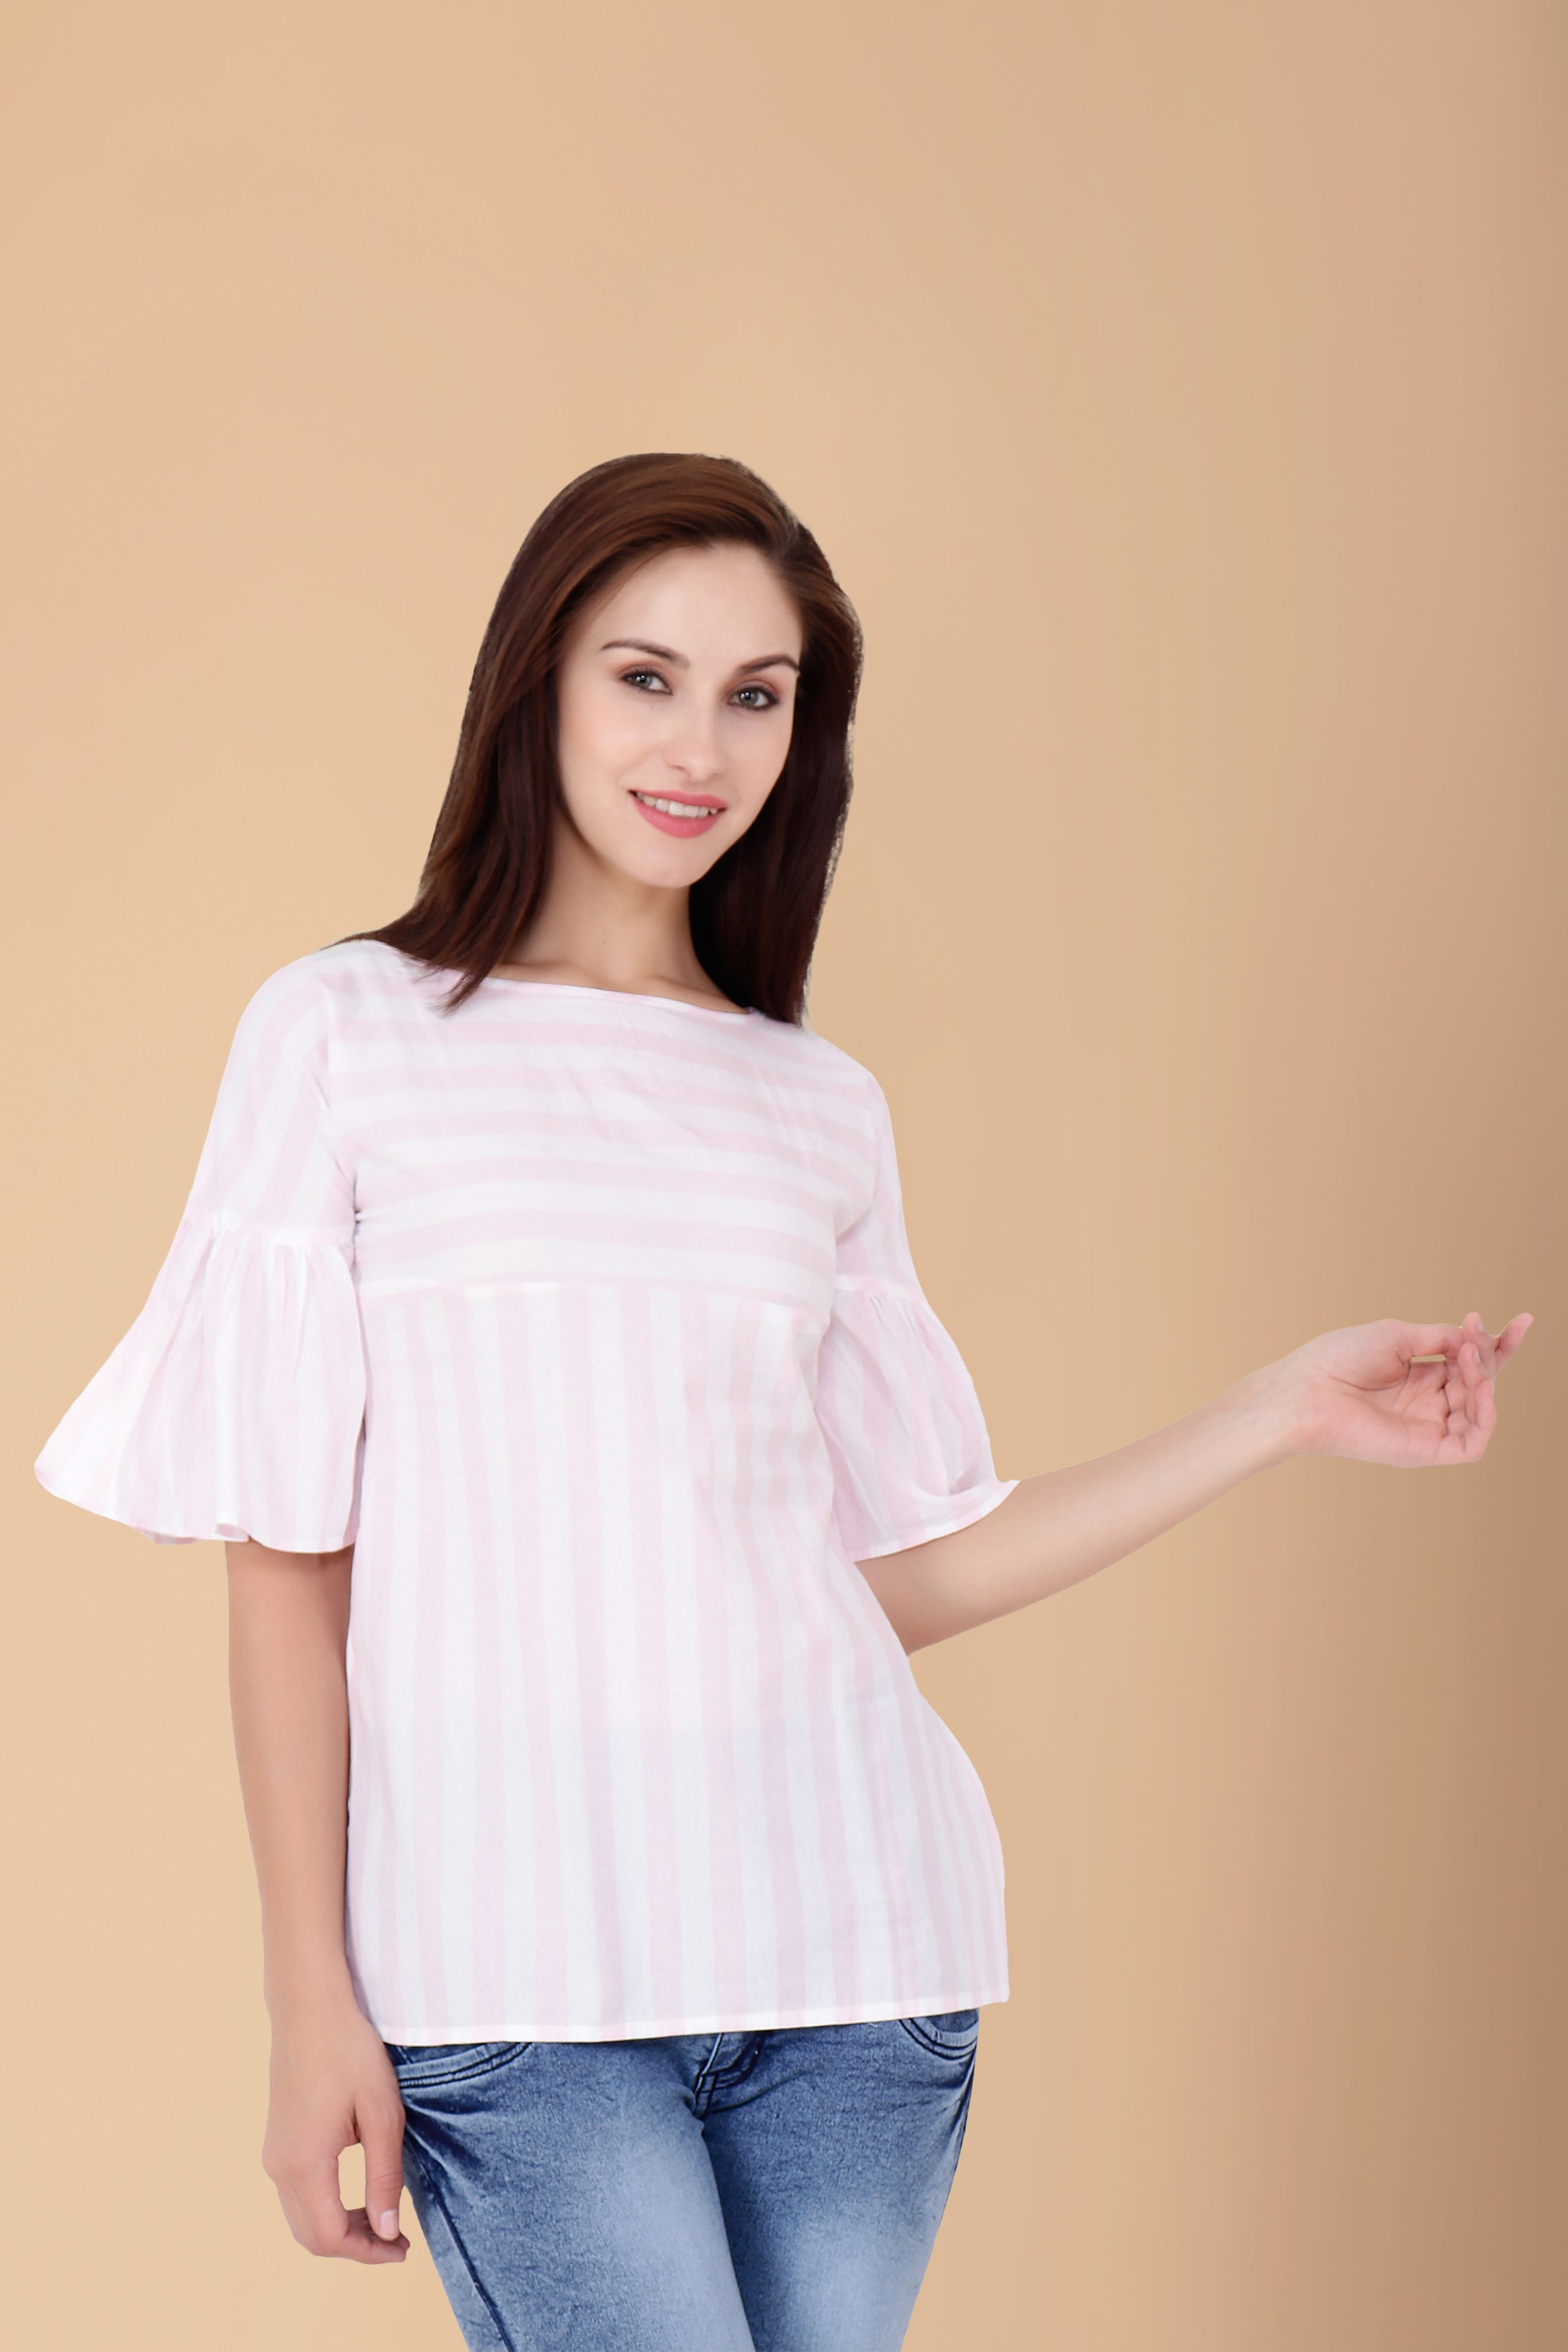 10XL, 2XL, 3XL, 4XL, 5XL, 6XL, 7XL, 8XL, 9XL, BOAT, CHERRY, Cotton, Frilled, FRILLED SLEEVES, Key Hole, Pink, PLUS SIZE TOP, Striped, STRIPES